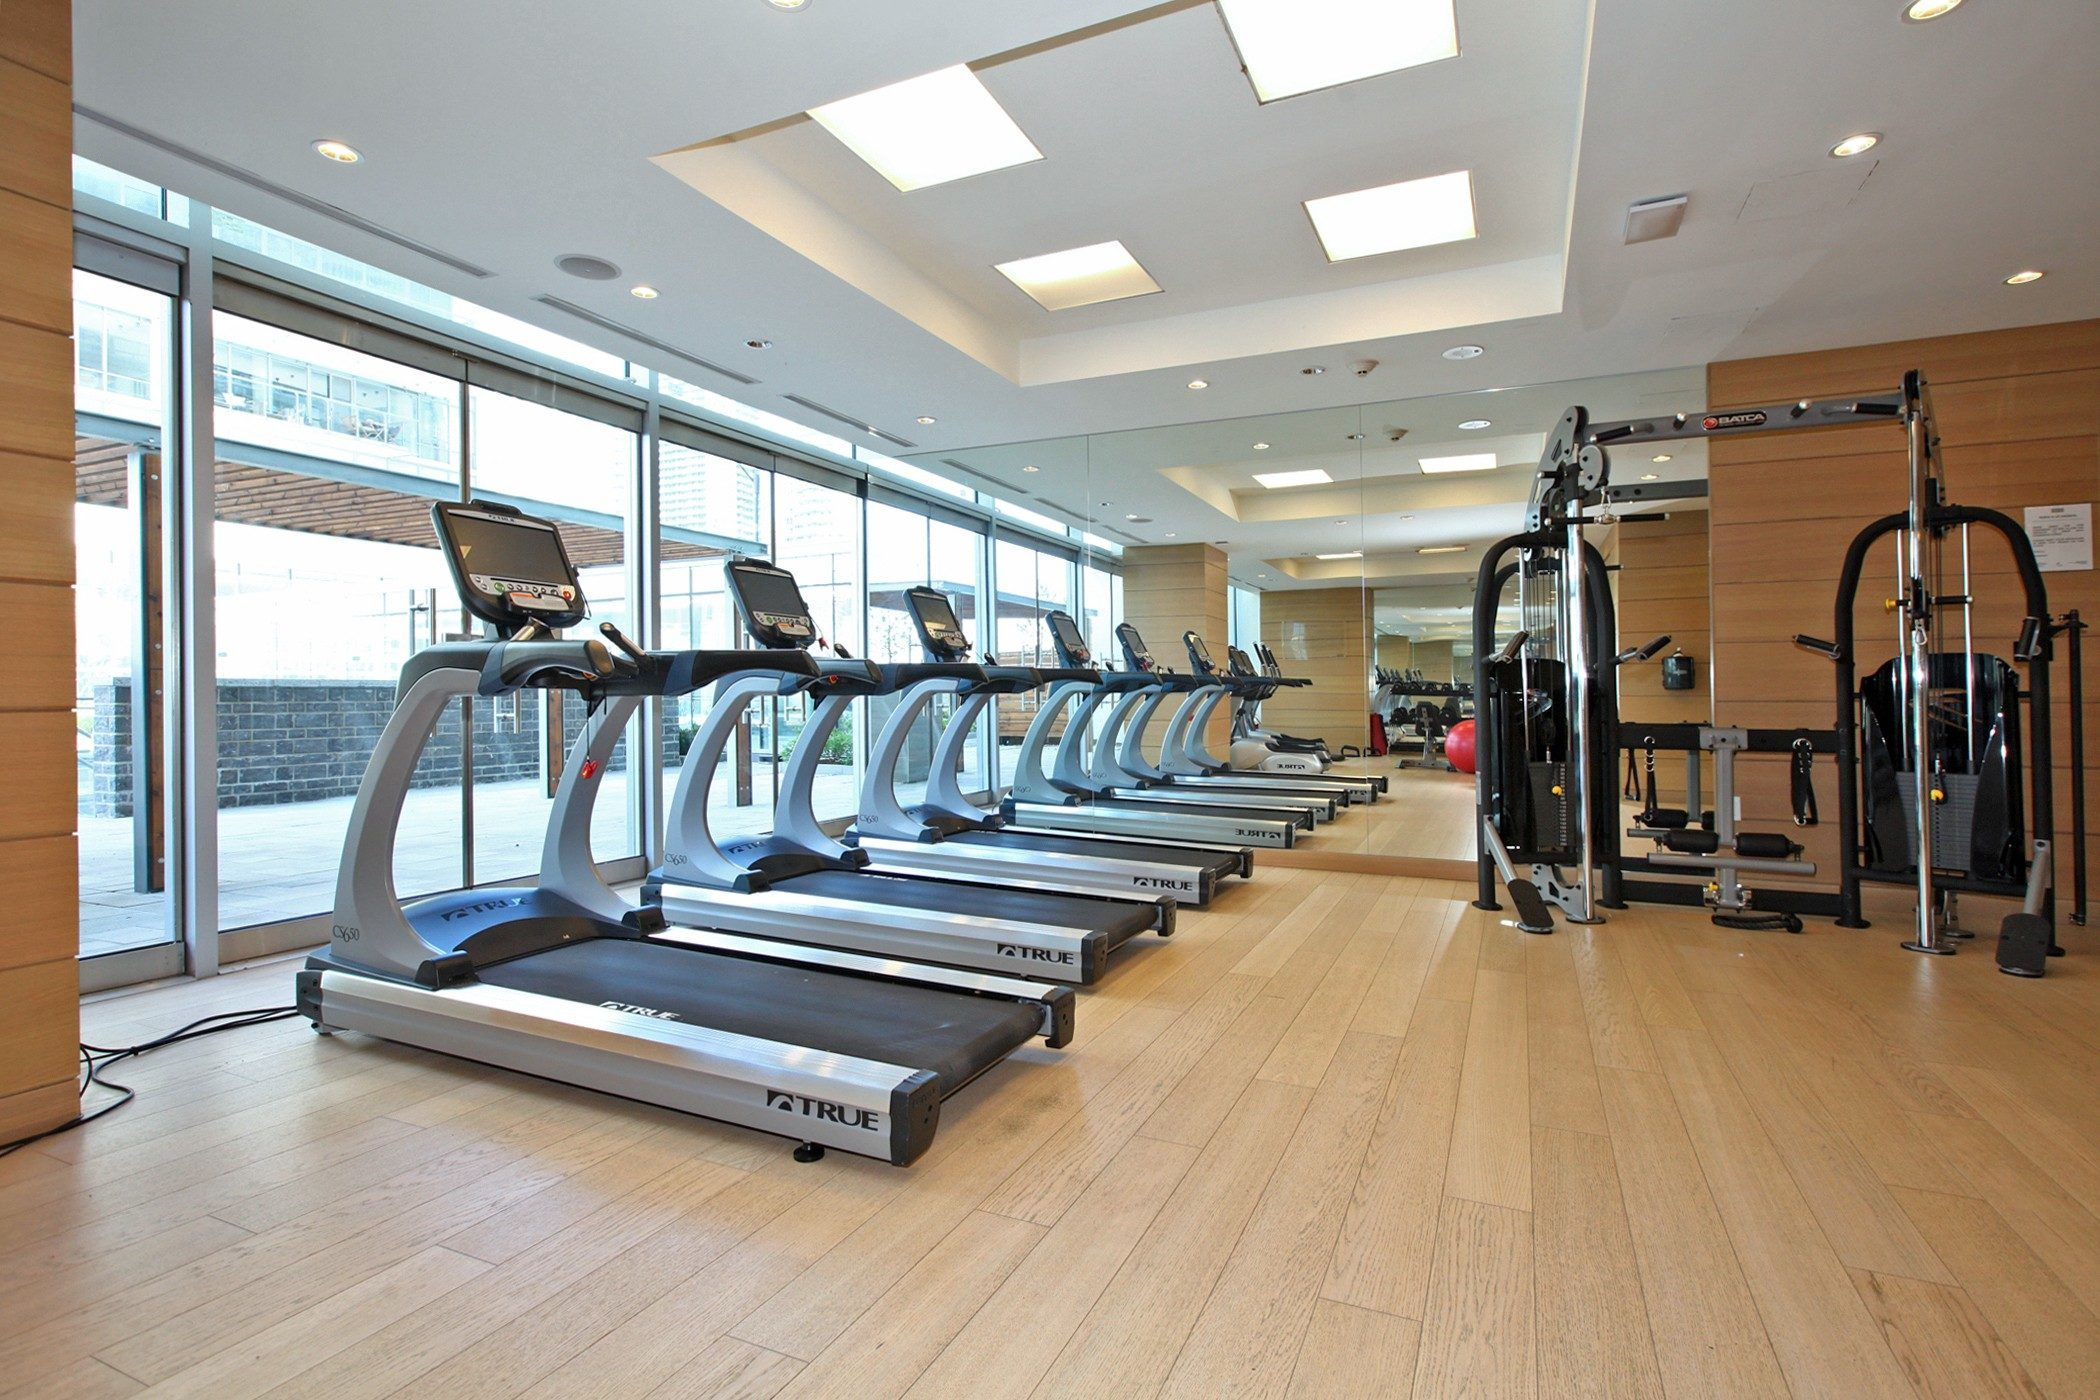 Exercise room workout rooms real estate room